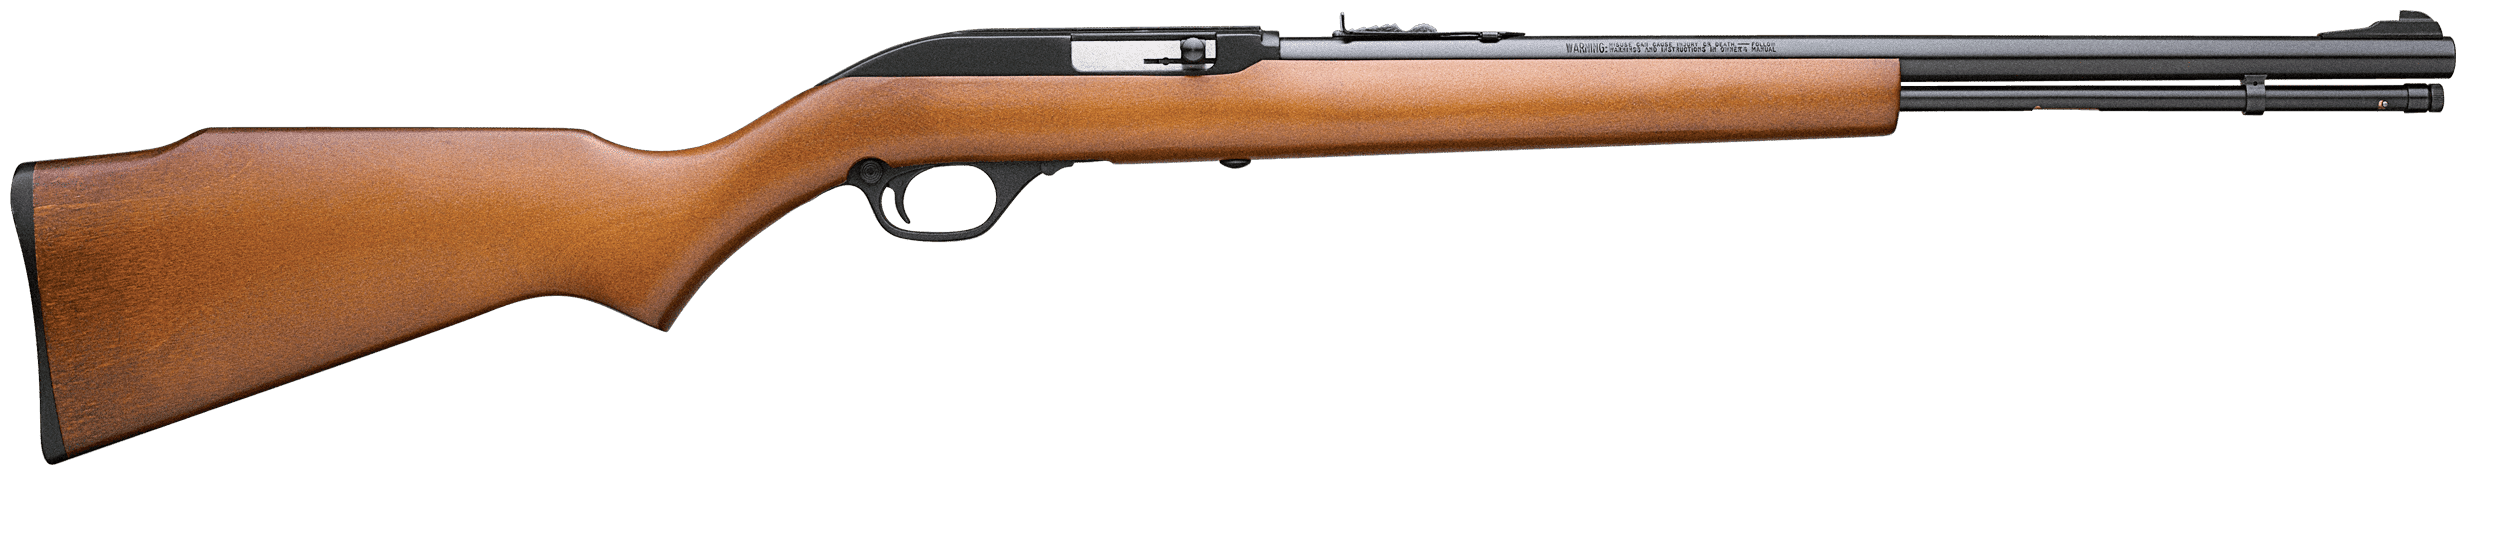 image of Marlin Model 60